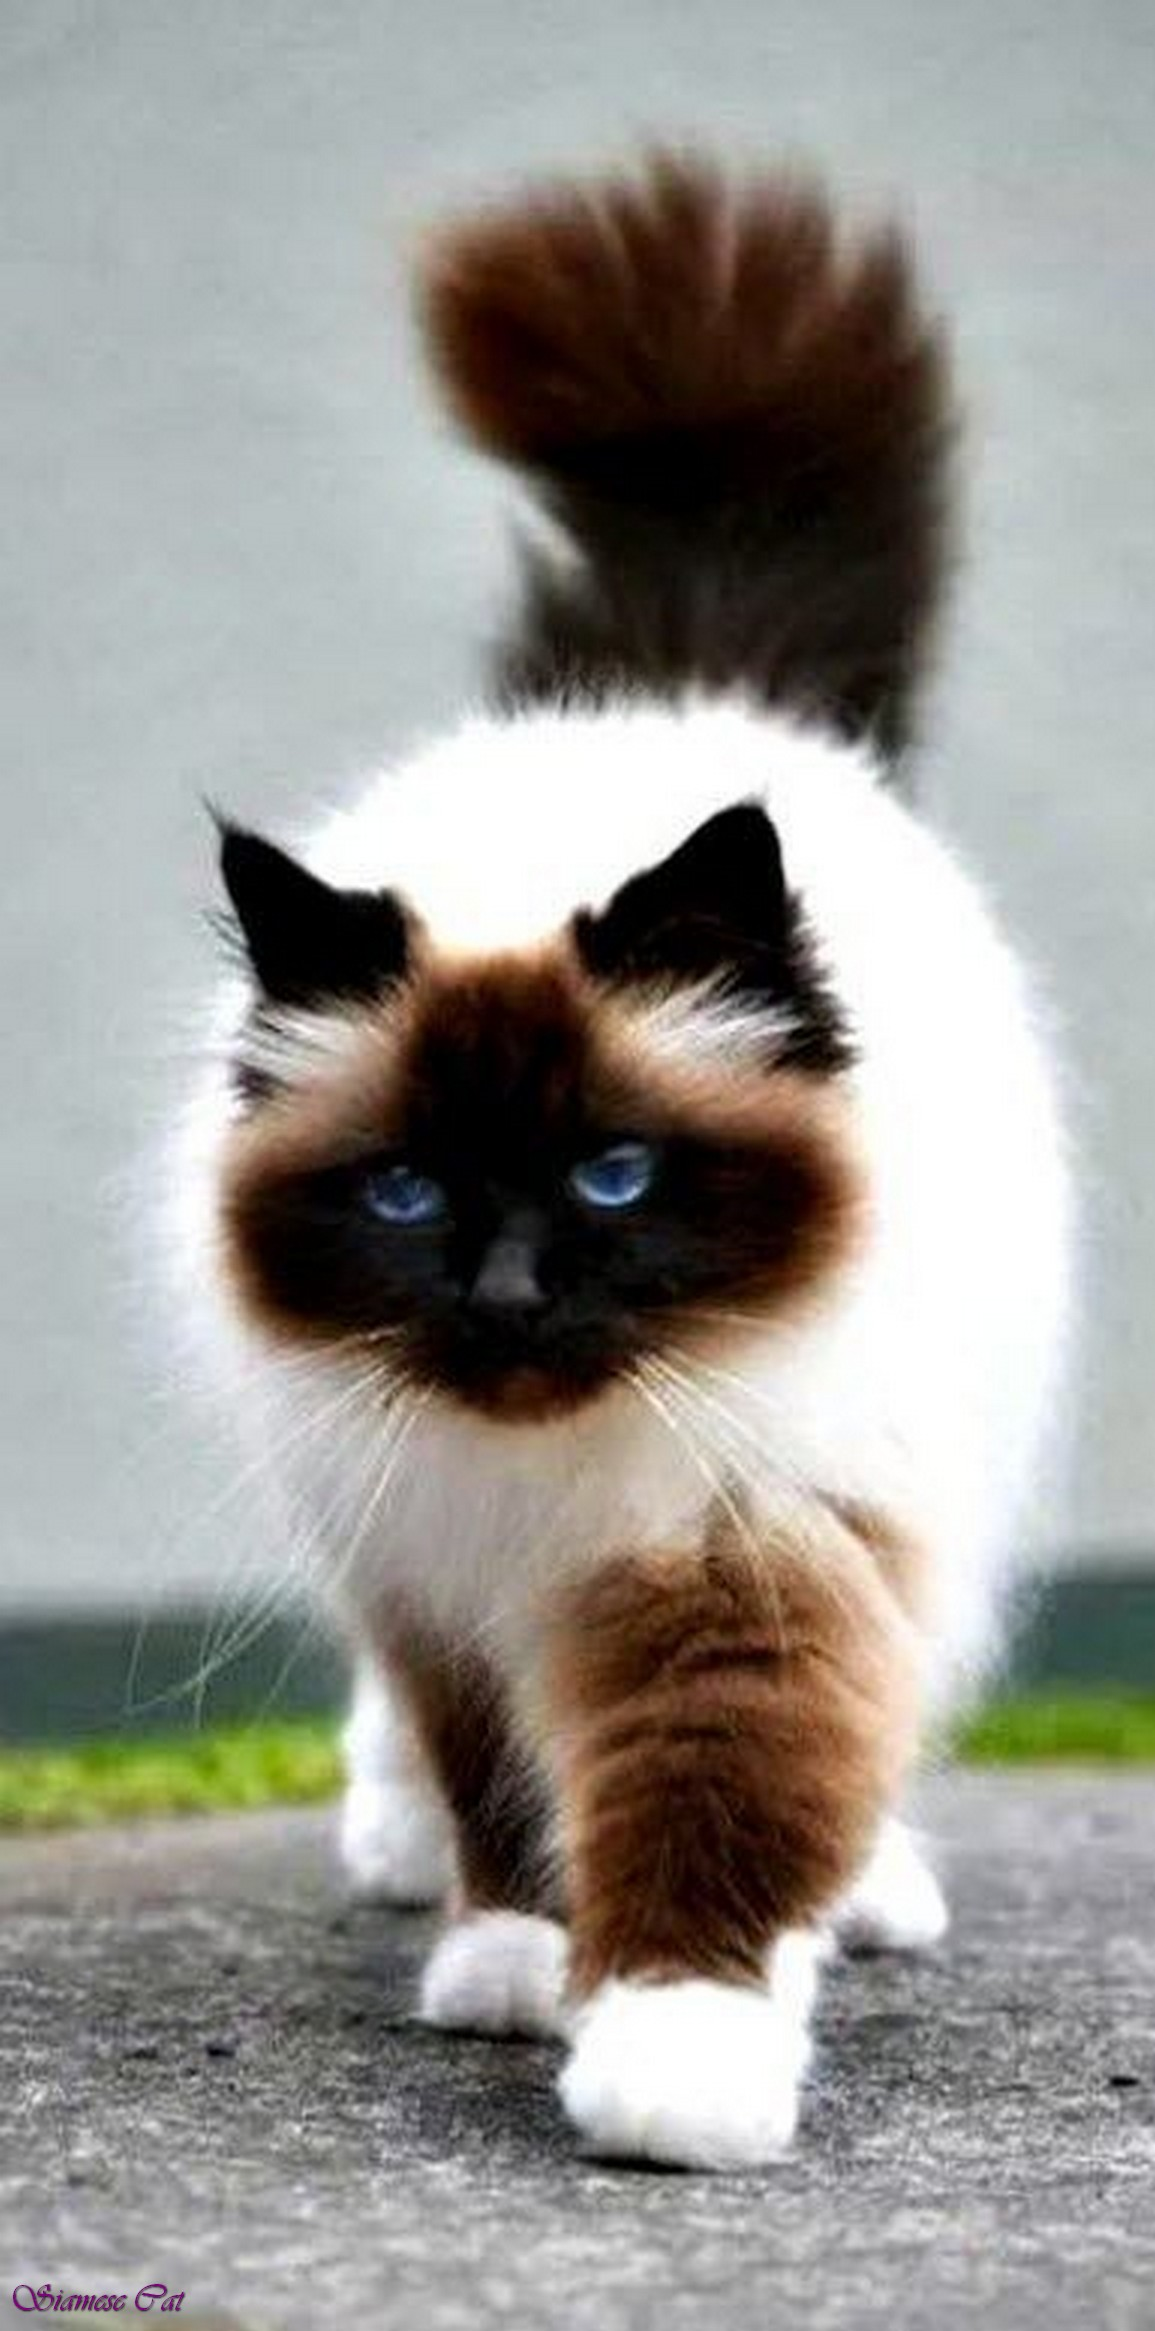 Fluffy Siamese Cat Black Siamese Cat With Blue Eyes Siamese Mix Cats Grey Himalayan Siamese Cat Mix Lilac Point Siamese Cats  Jpg